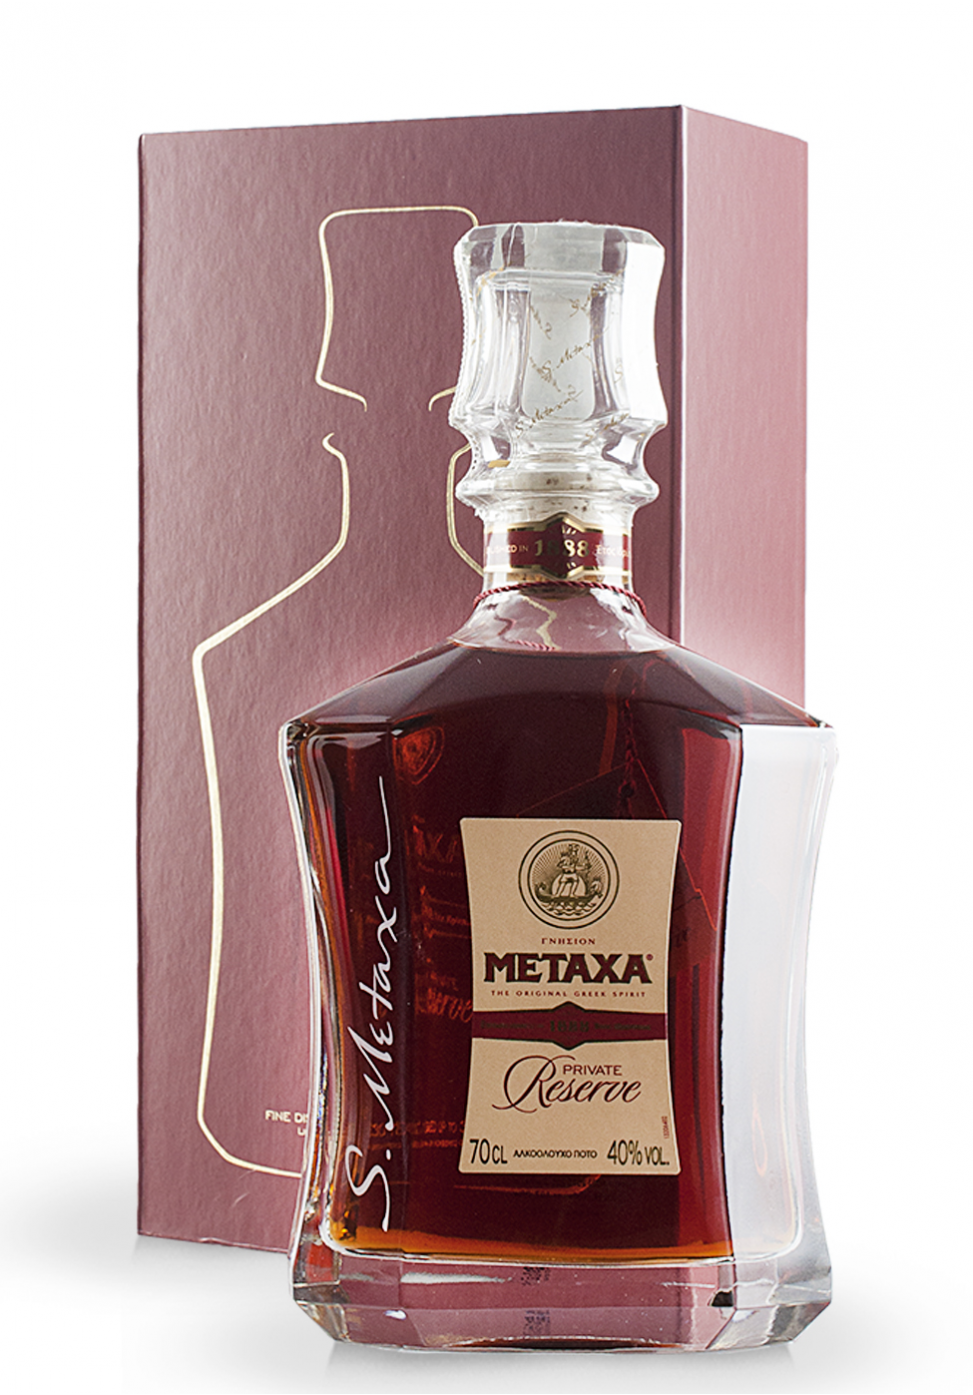 Brandy Metaxa Private Reserve, Fine Distillates Aged up to 30 years (0.7L)